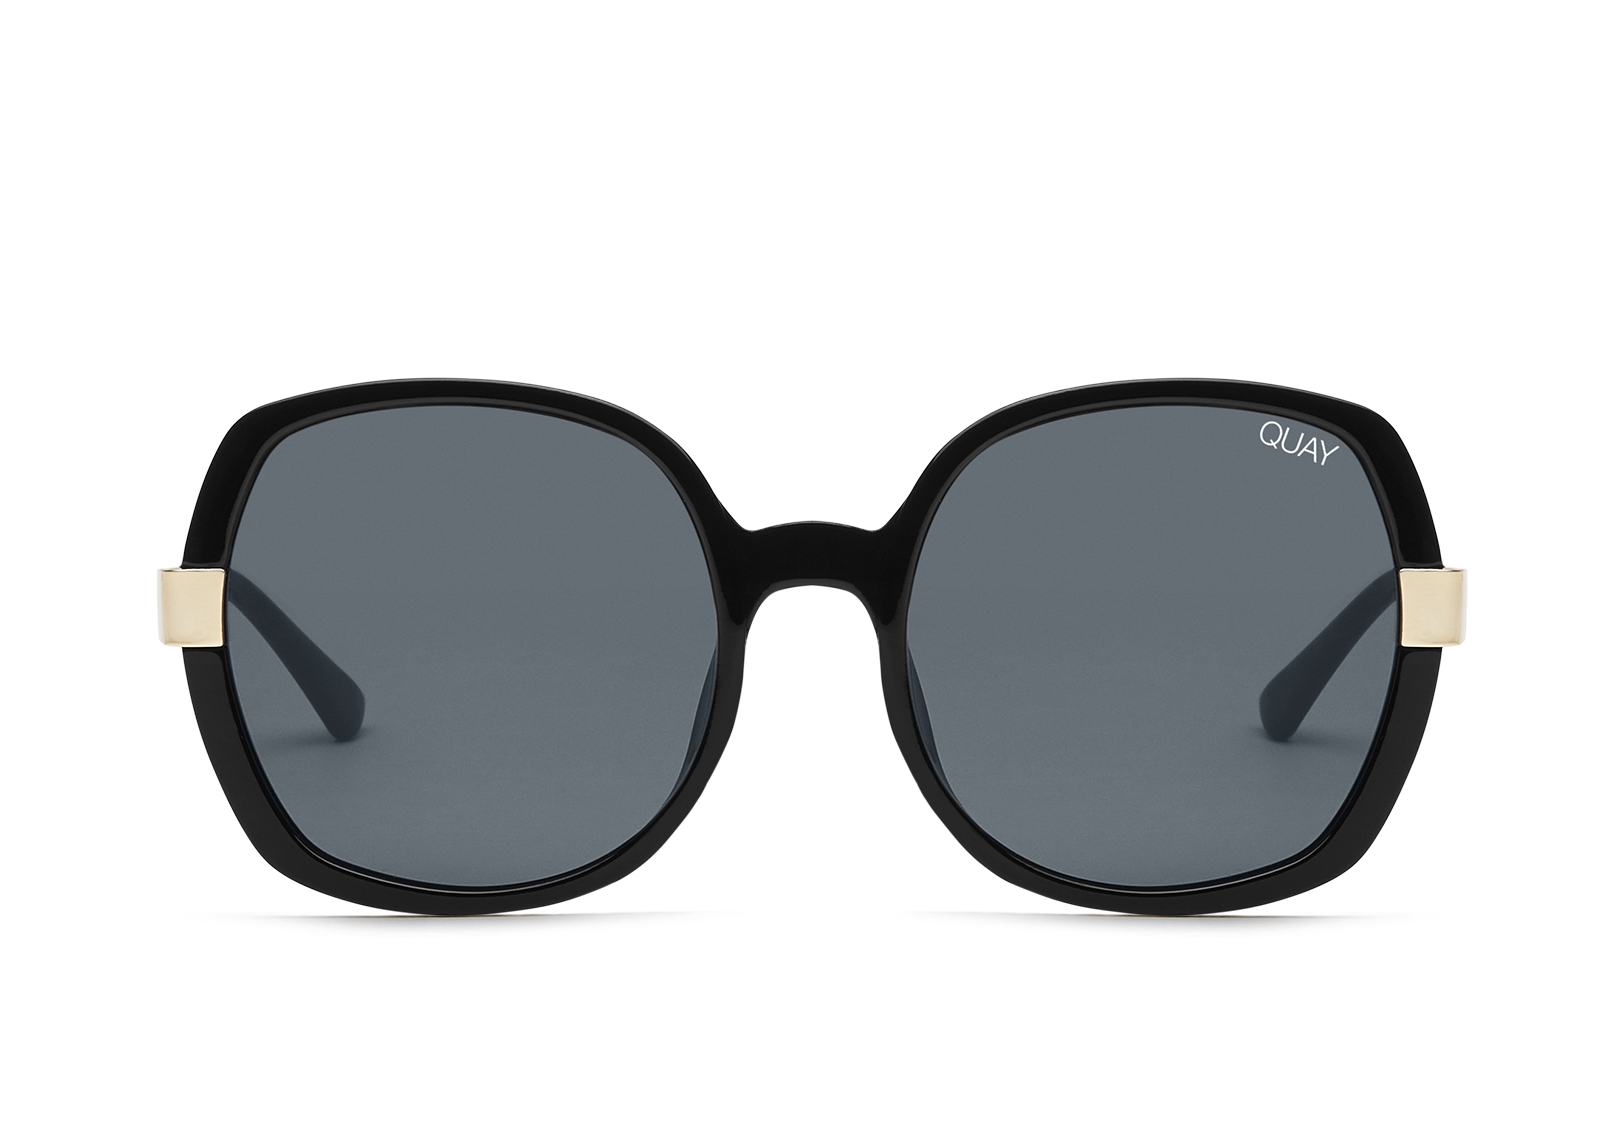 Load image into Gallery viewer, Quay Australia - Gold Dust Black/Smoke Sunglasses